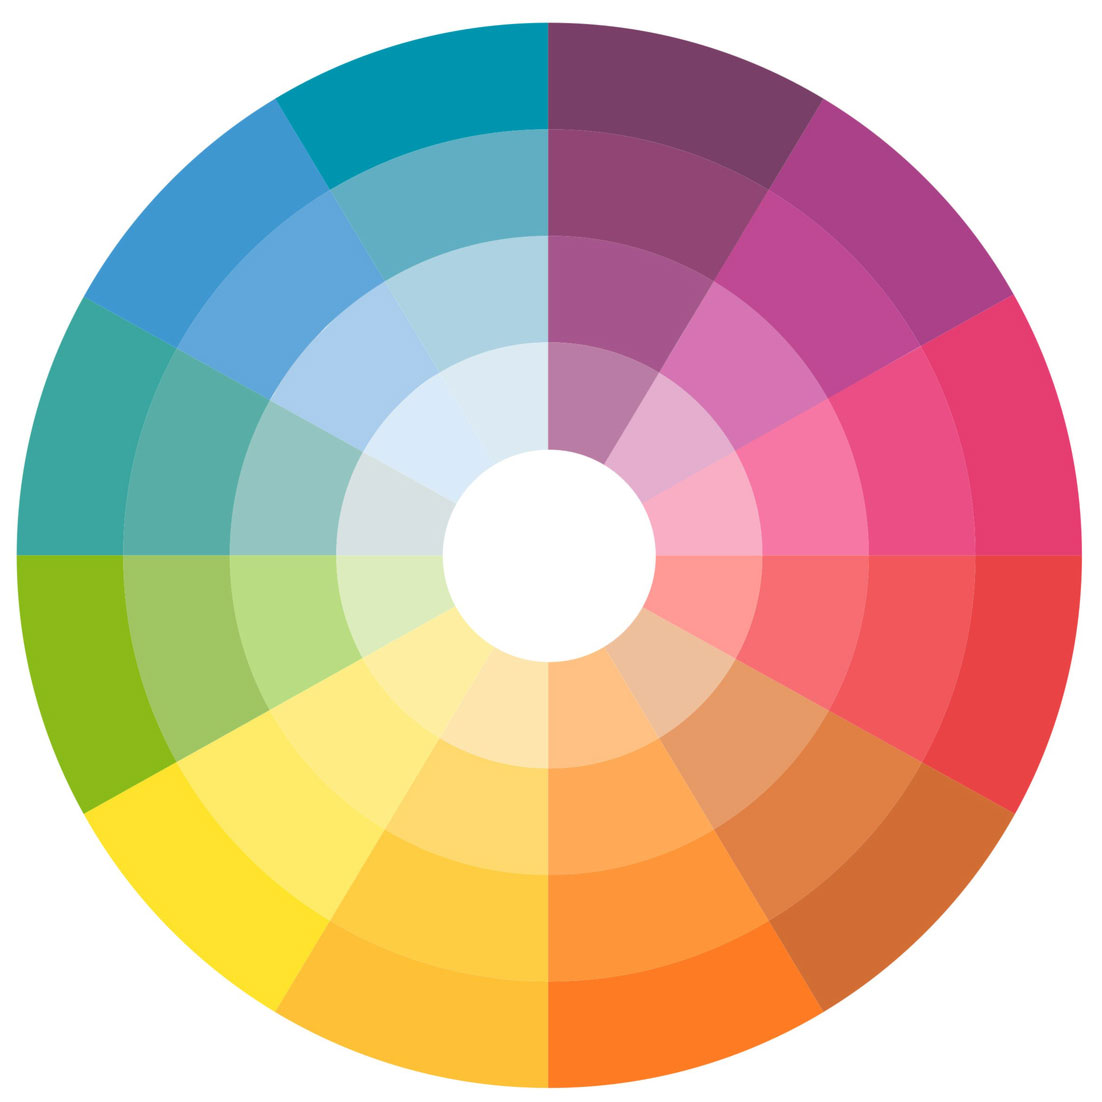 color-wheel.jpg (1102×1102)